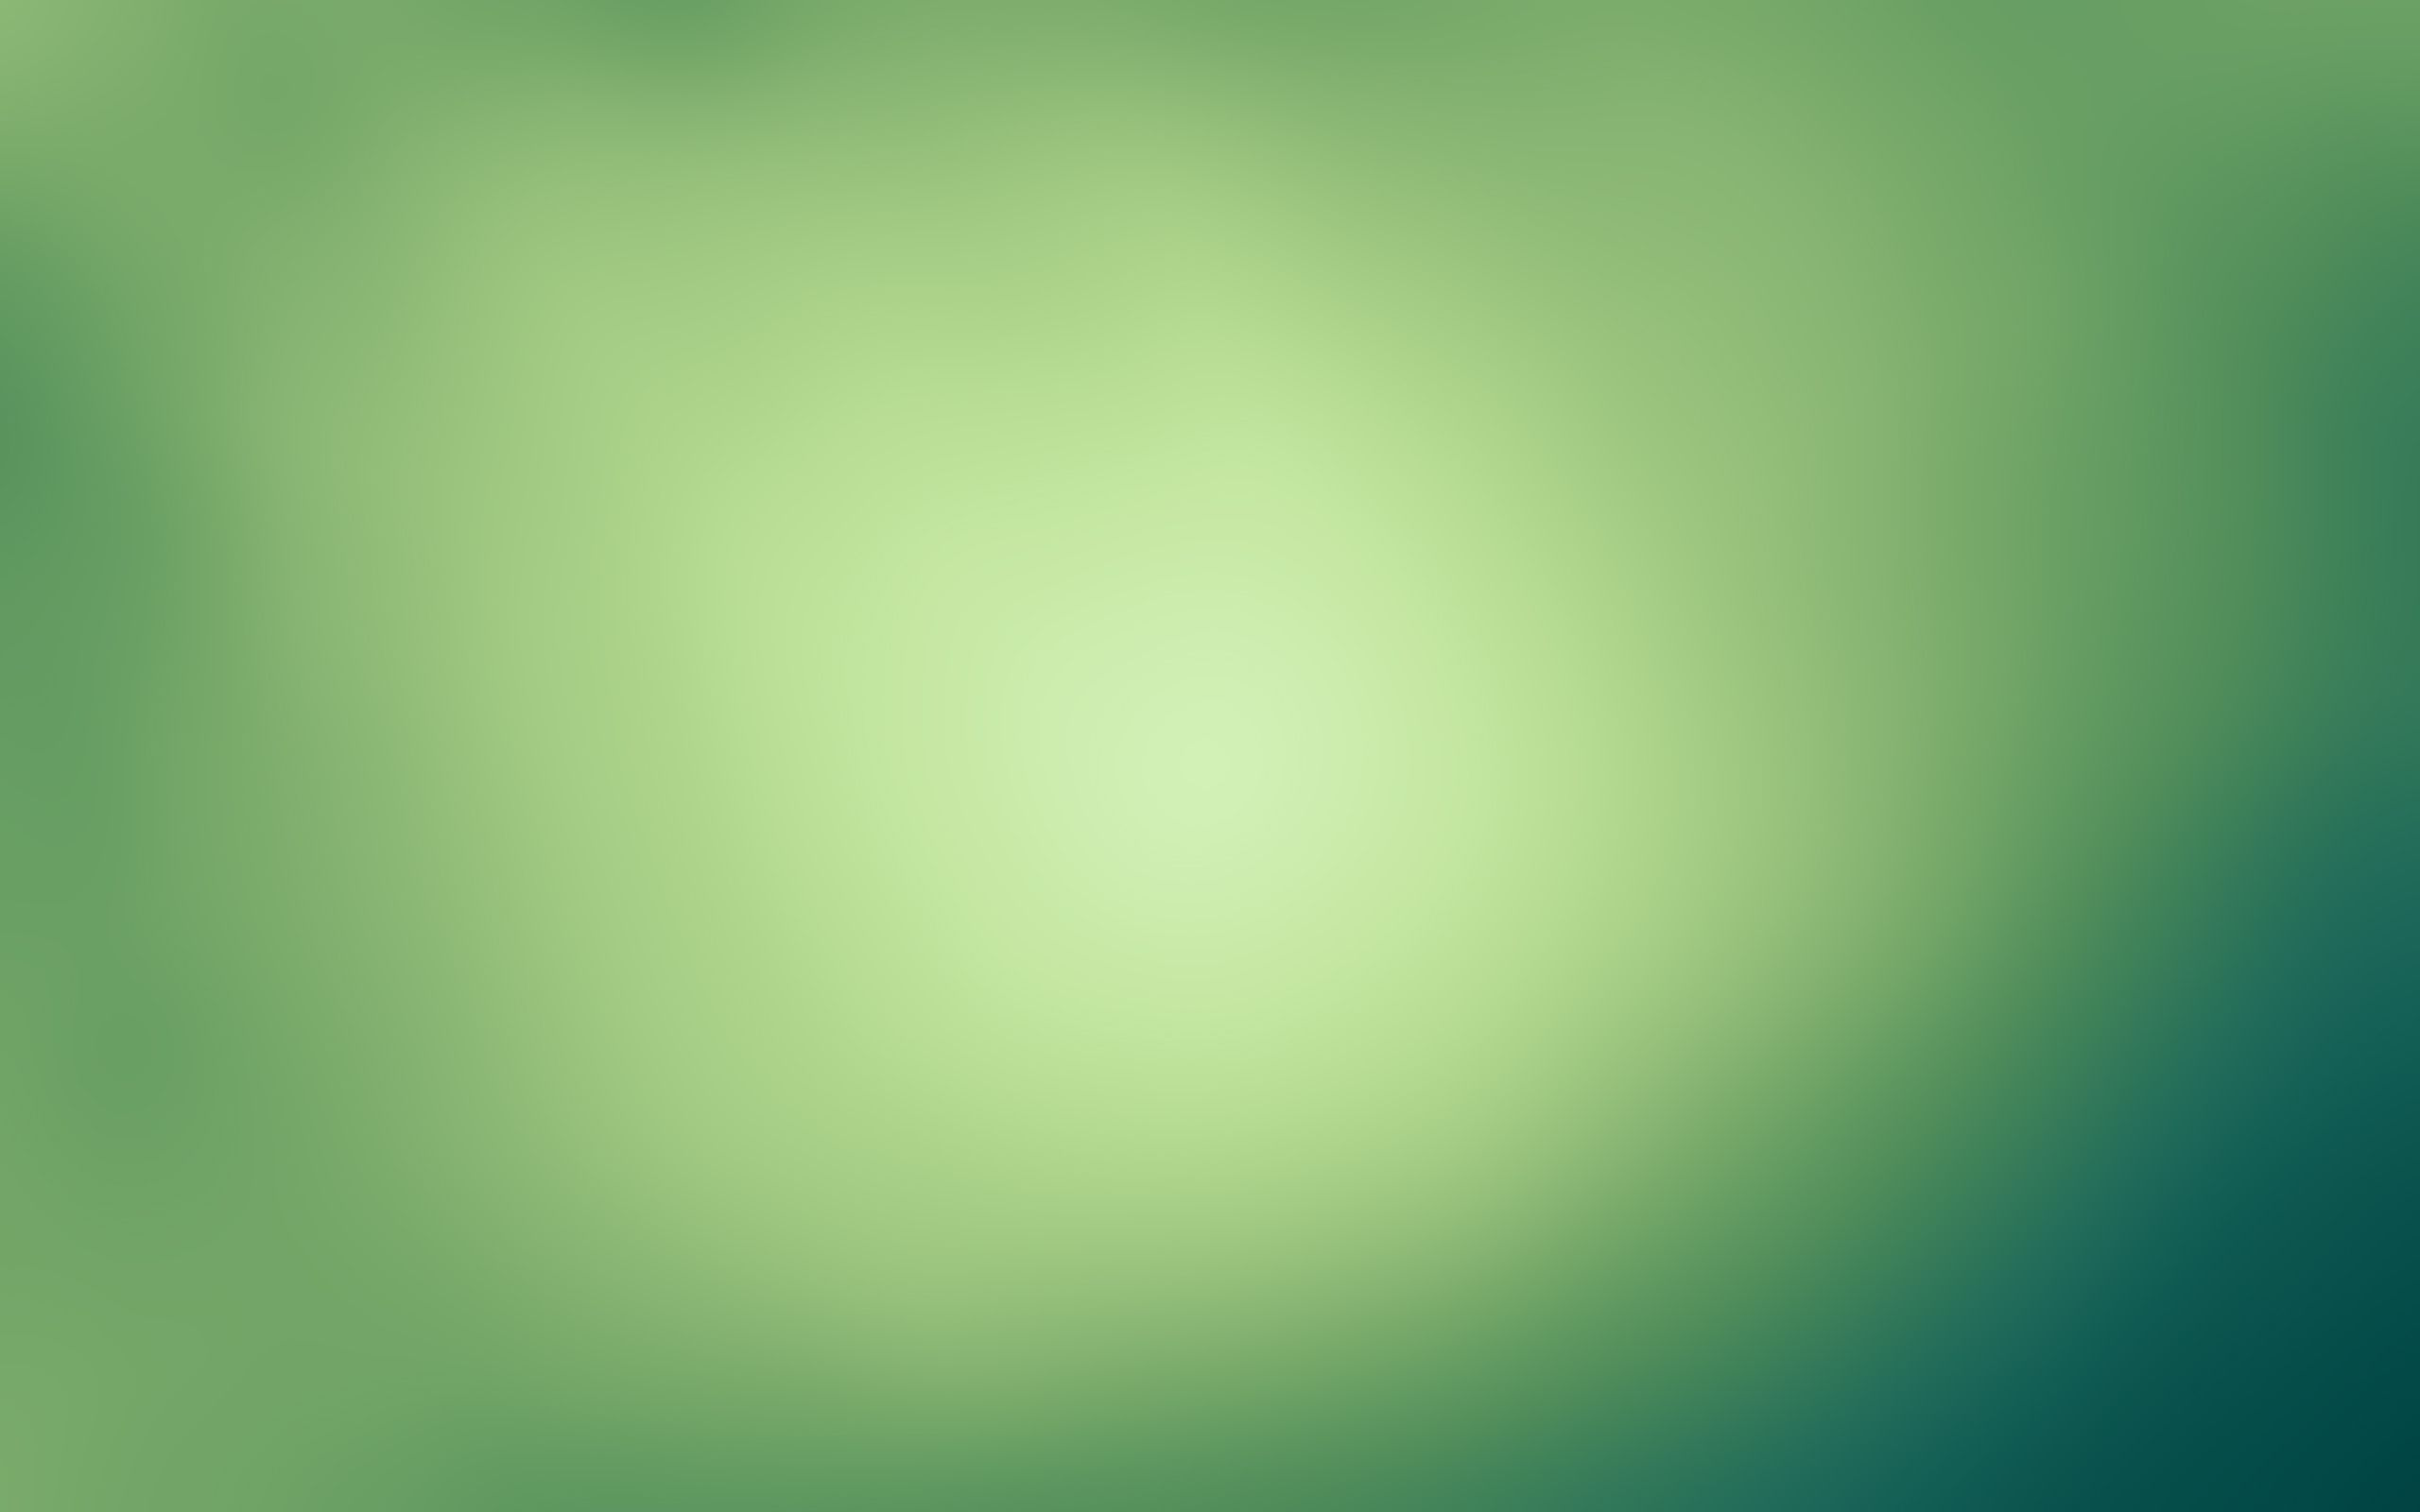 Free Solid Color Backgrounds Green Color Lightness And